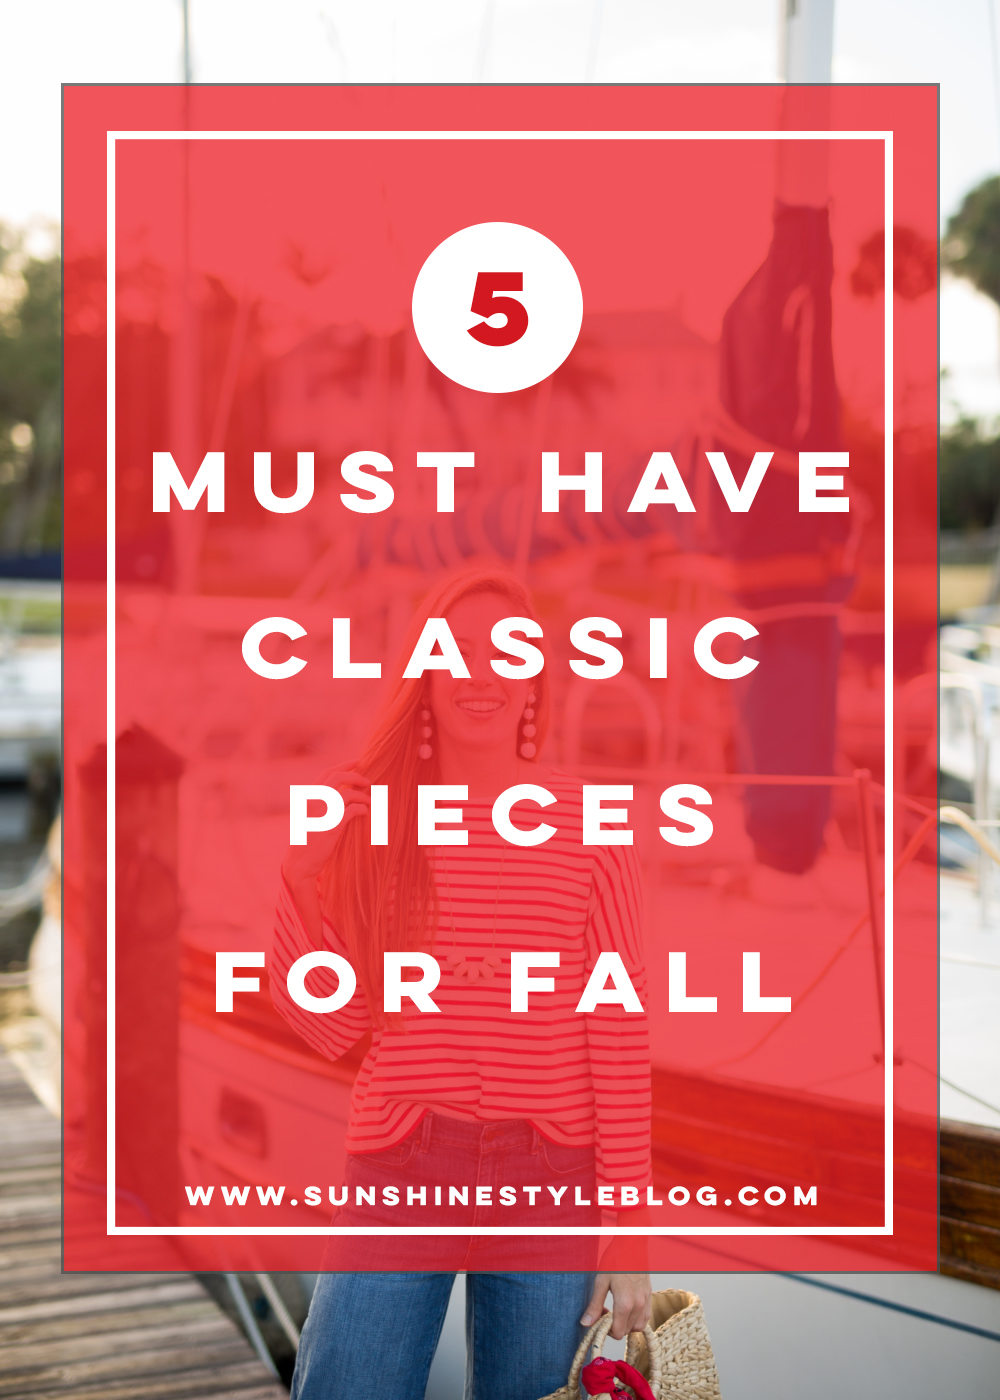 5 Must Have Classic Pieces for Fall - Classic Striped Fall Outfit, Includes striped top, wide leg pants, fall outfit inspiration | Sunshine Style